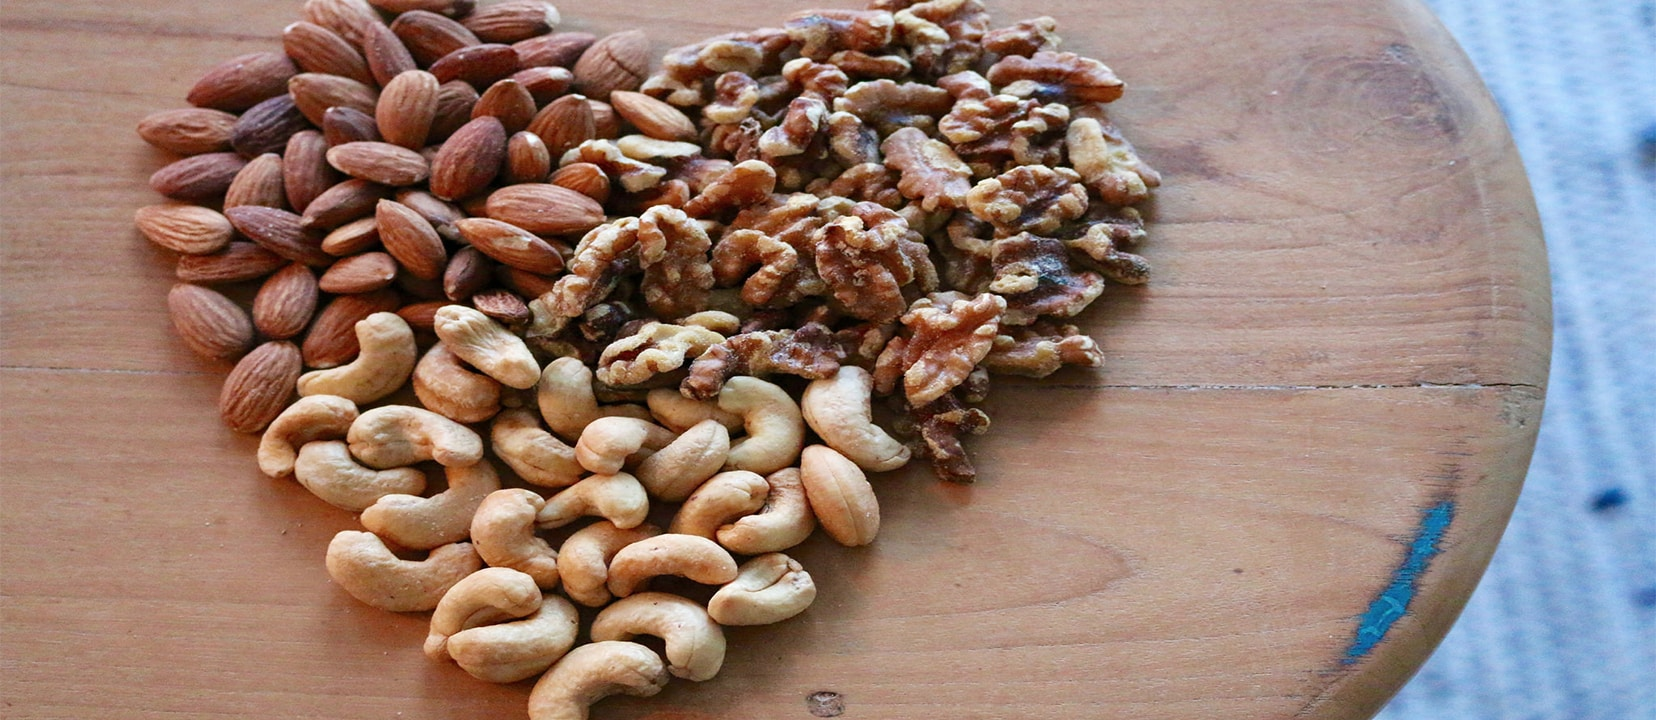 Benefits of Nuts for Stroke Preventoin